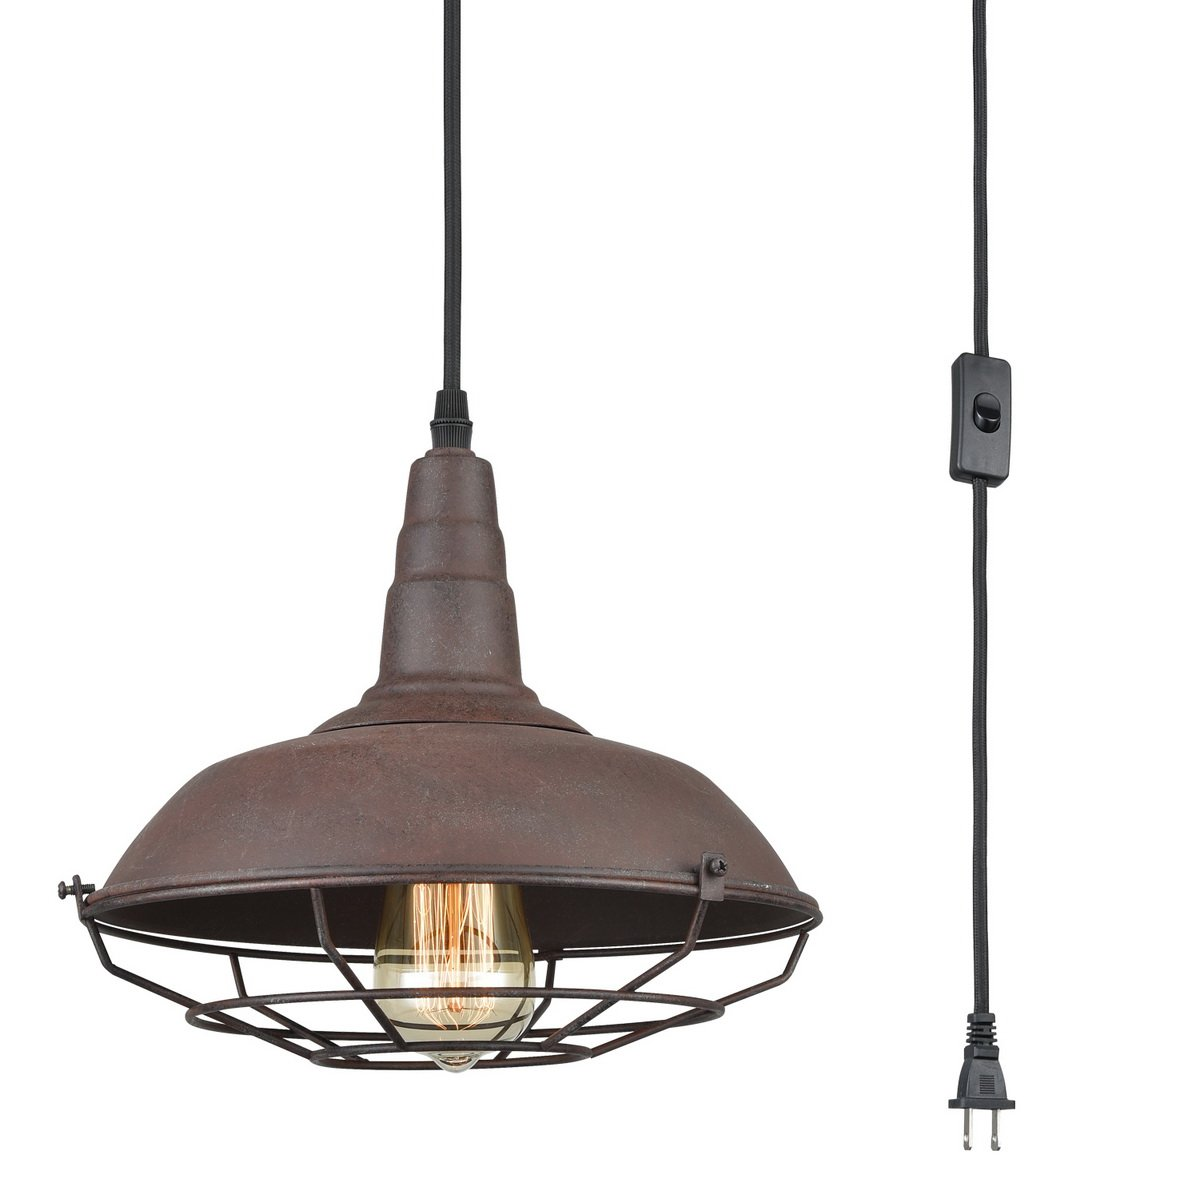 Dazhuan Nautical Barn Ceiling Light Metal Wire Caged Pendant Light Fixture Plug-In Farmhouse Hanging Lamp with Toggle Switch, Rust Finish by Dazhuan